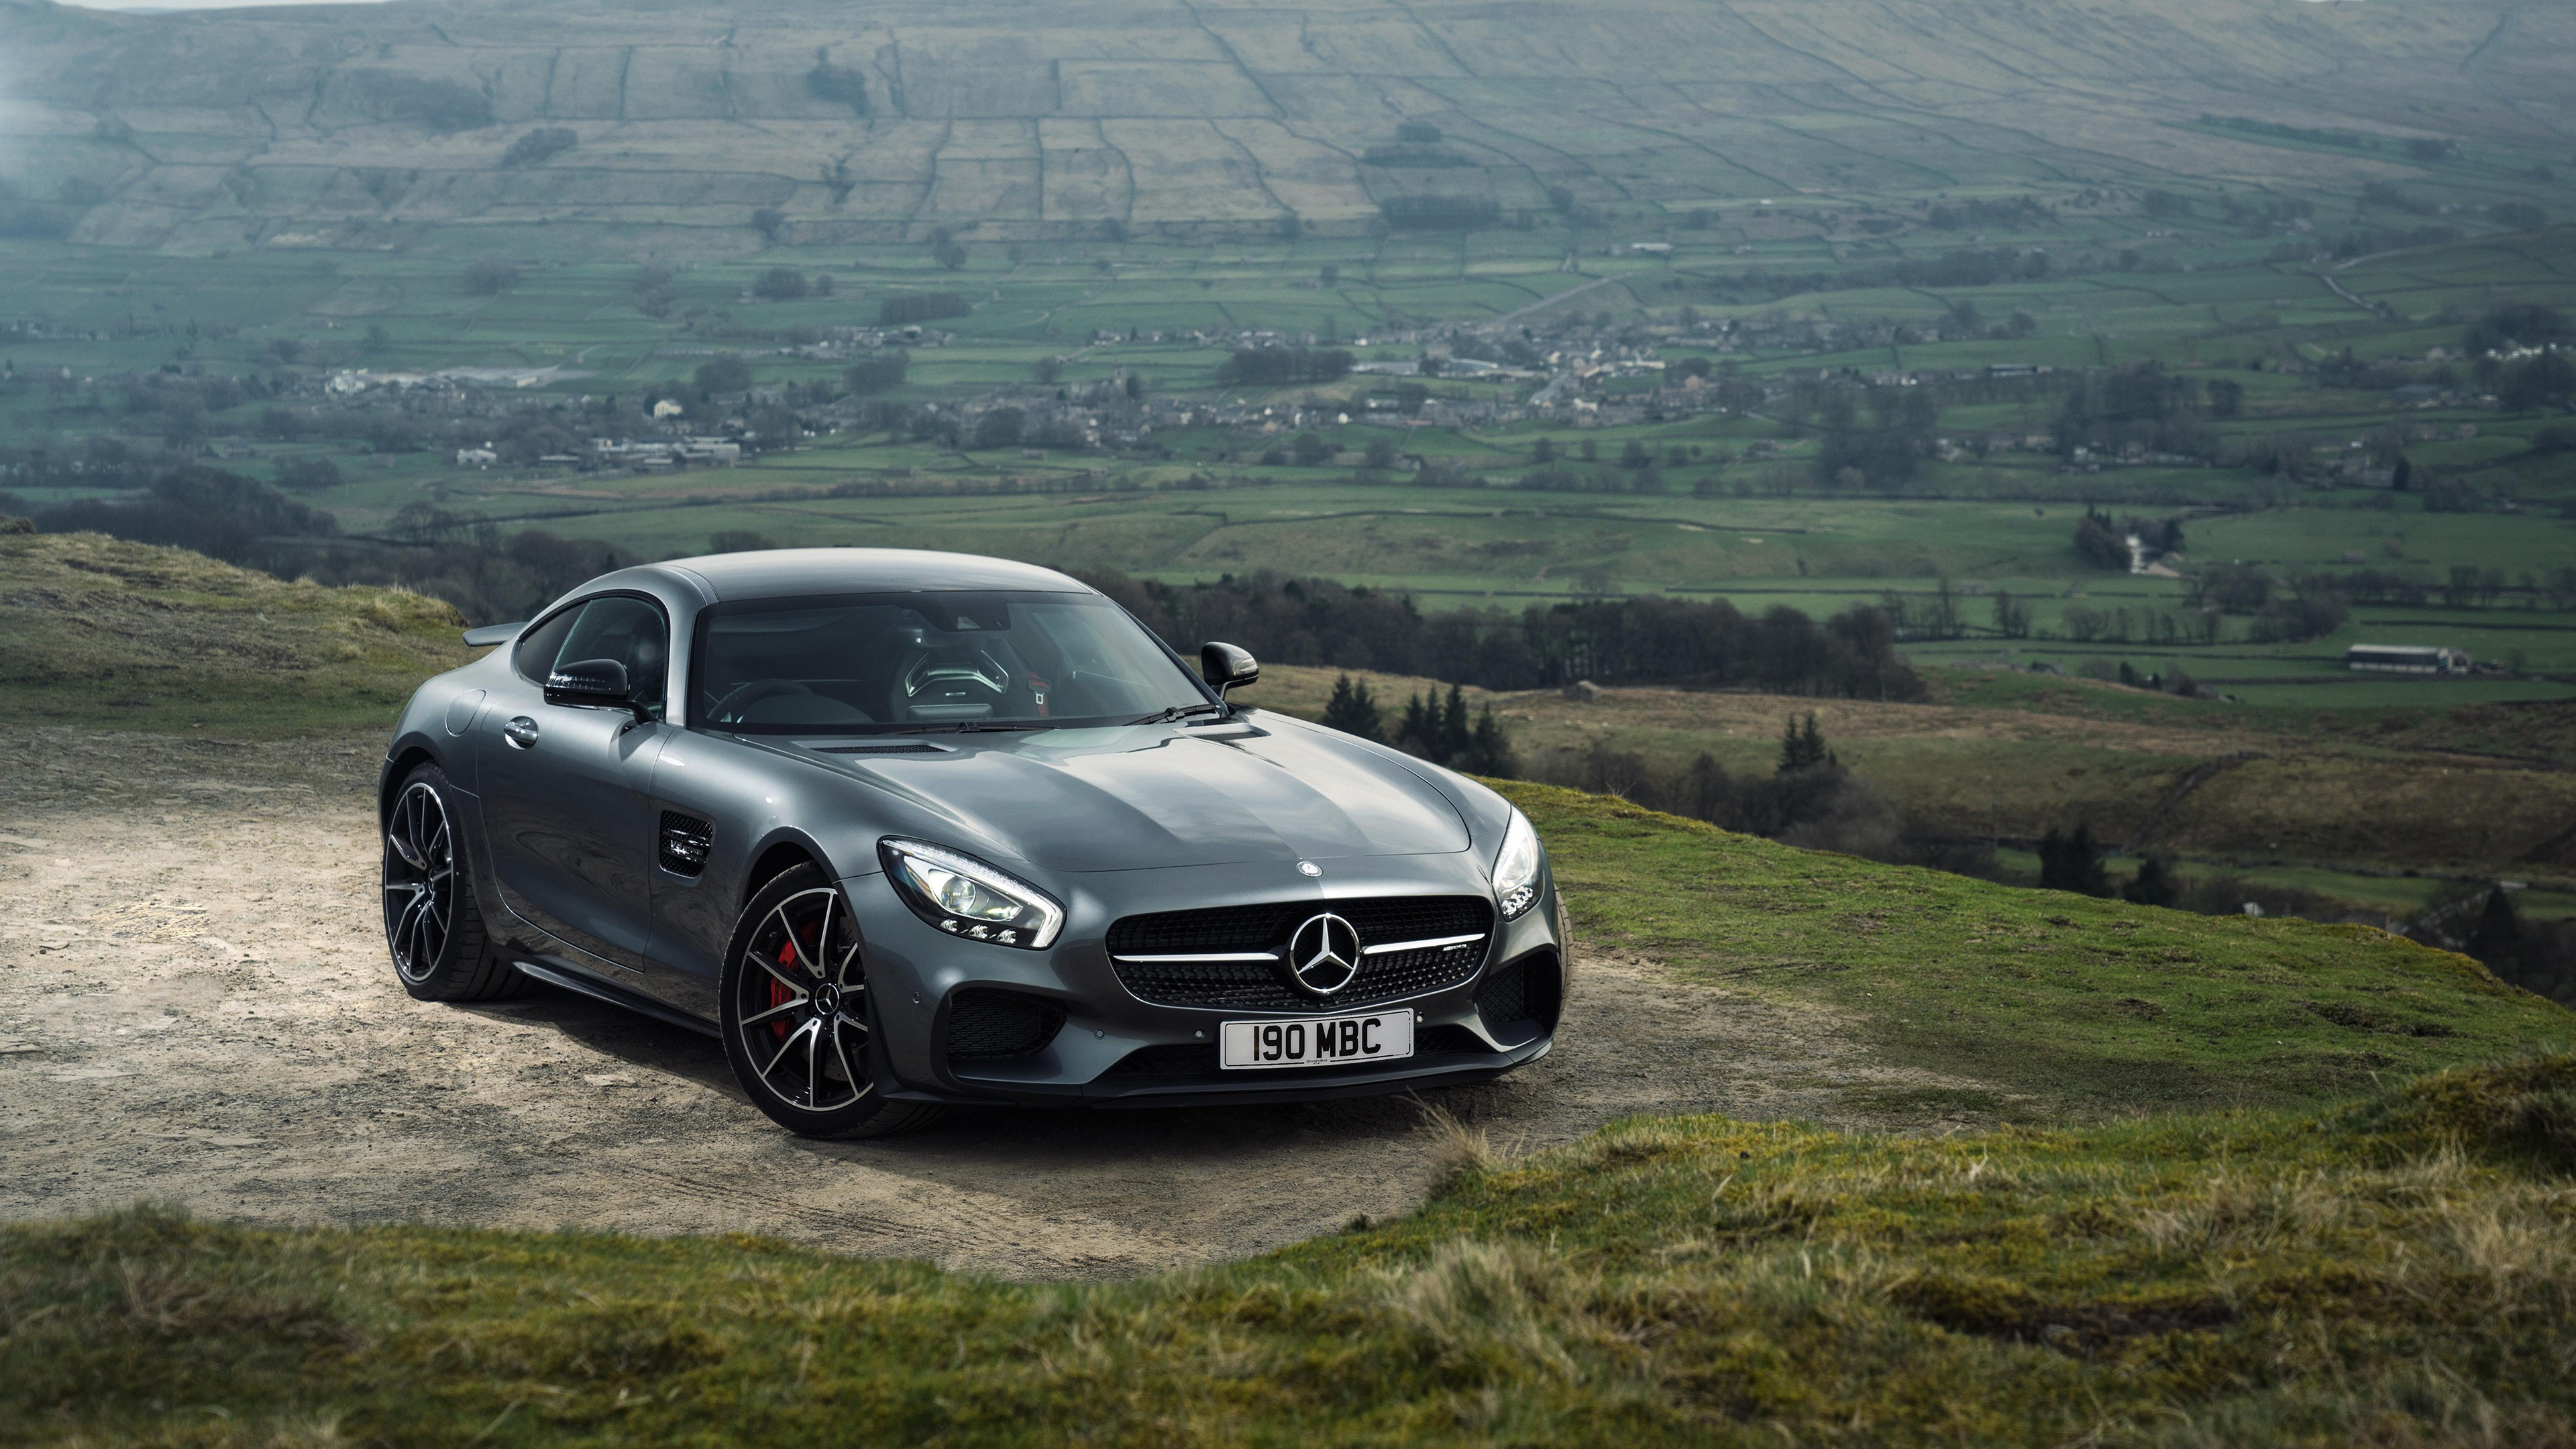 mercedes amg gt s 2015 wallpaper hd car wallpapers id 5741. Black Bedroom Furniture Sets. Home Design Ideas